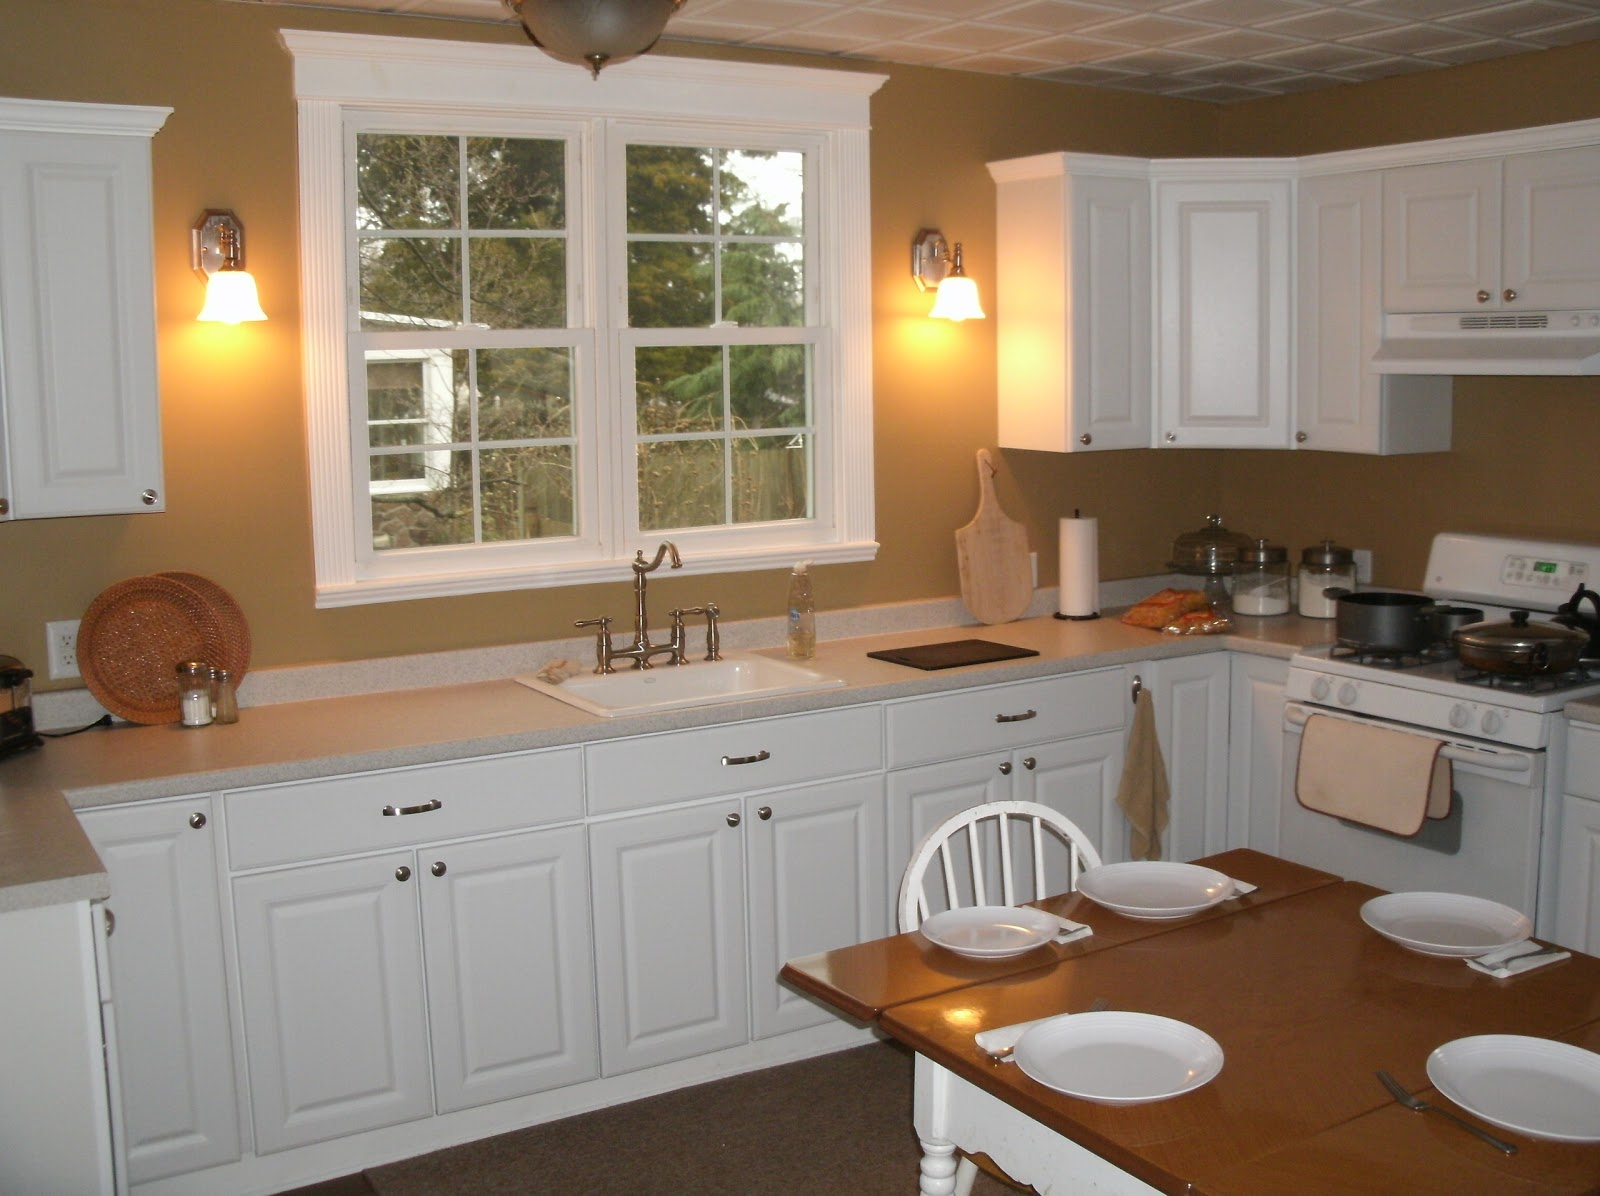 Home remodeling and improvements tips and how to 39 s for Kitchen remodel images